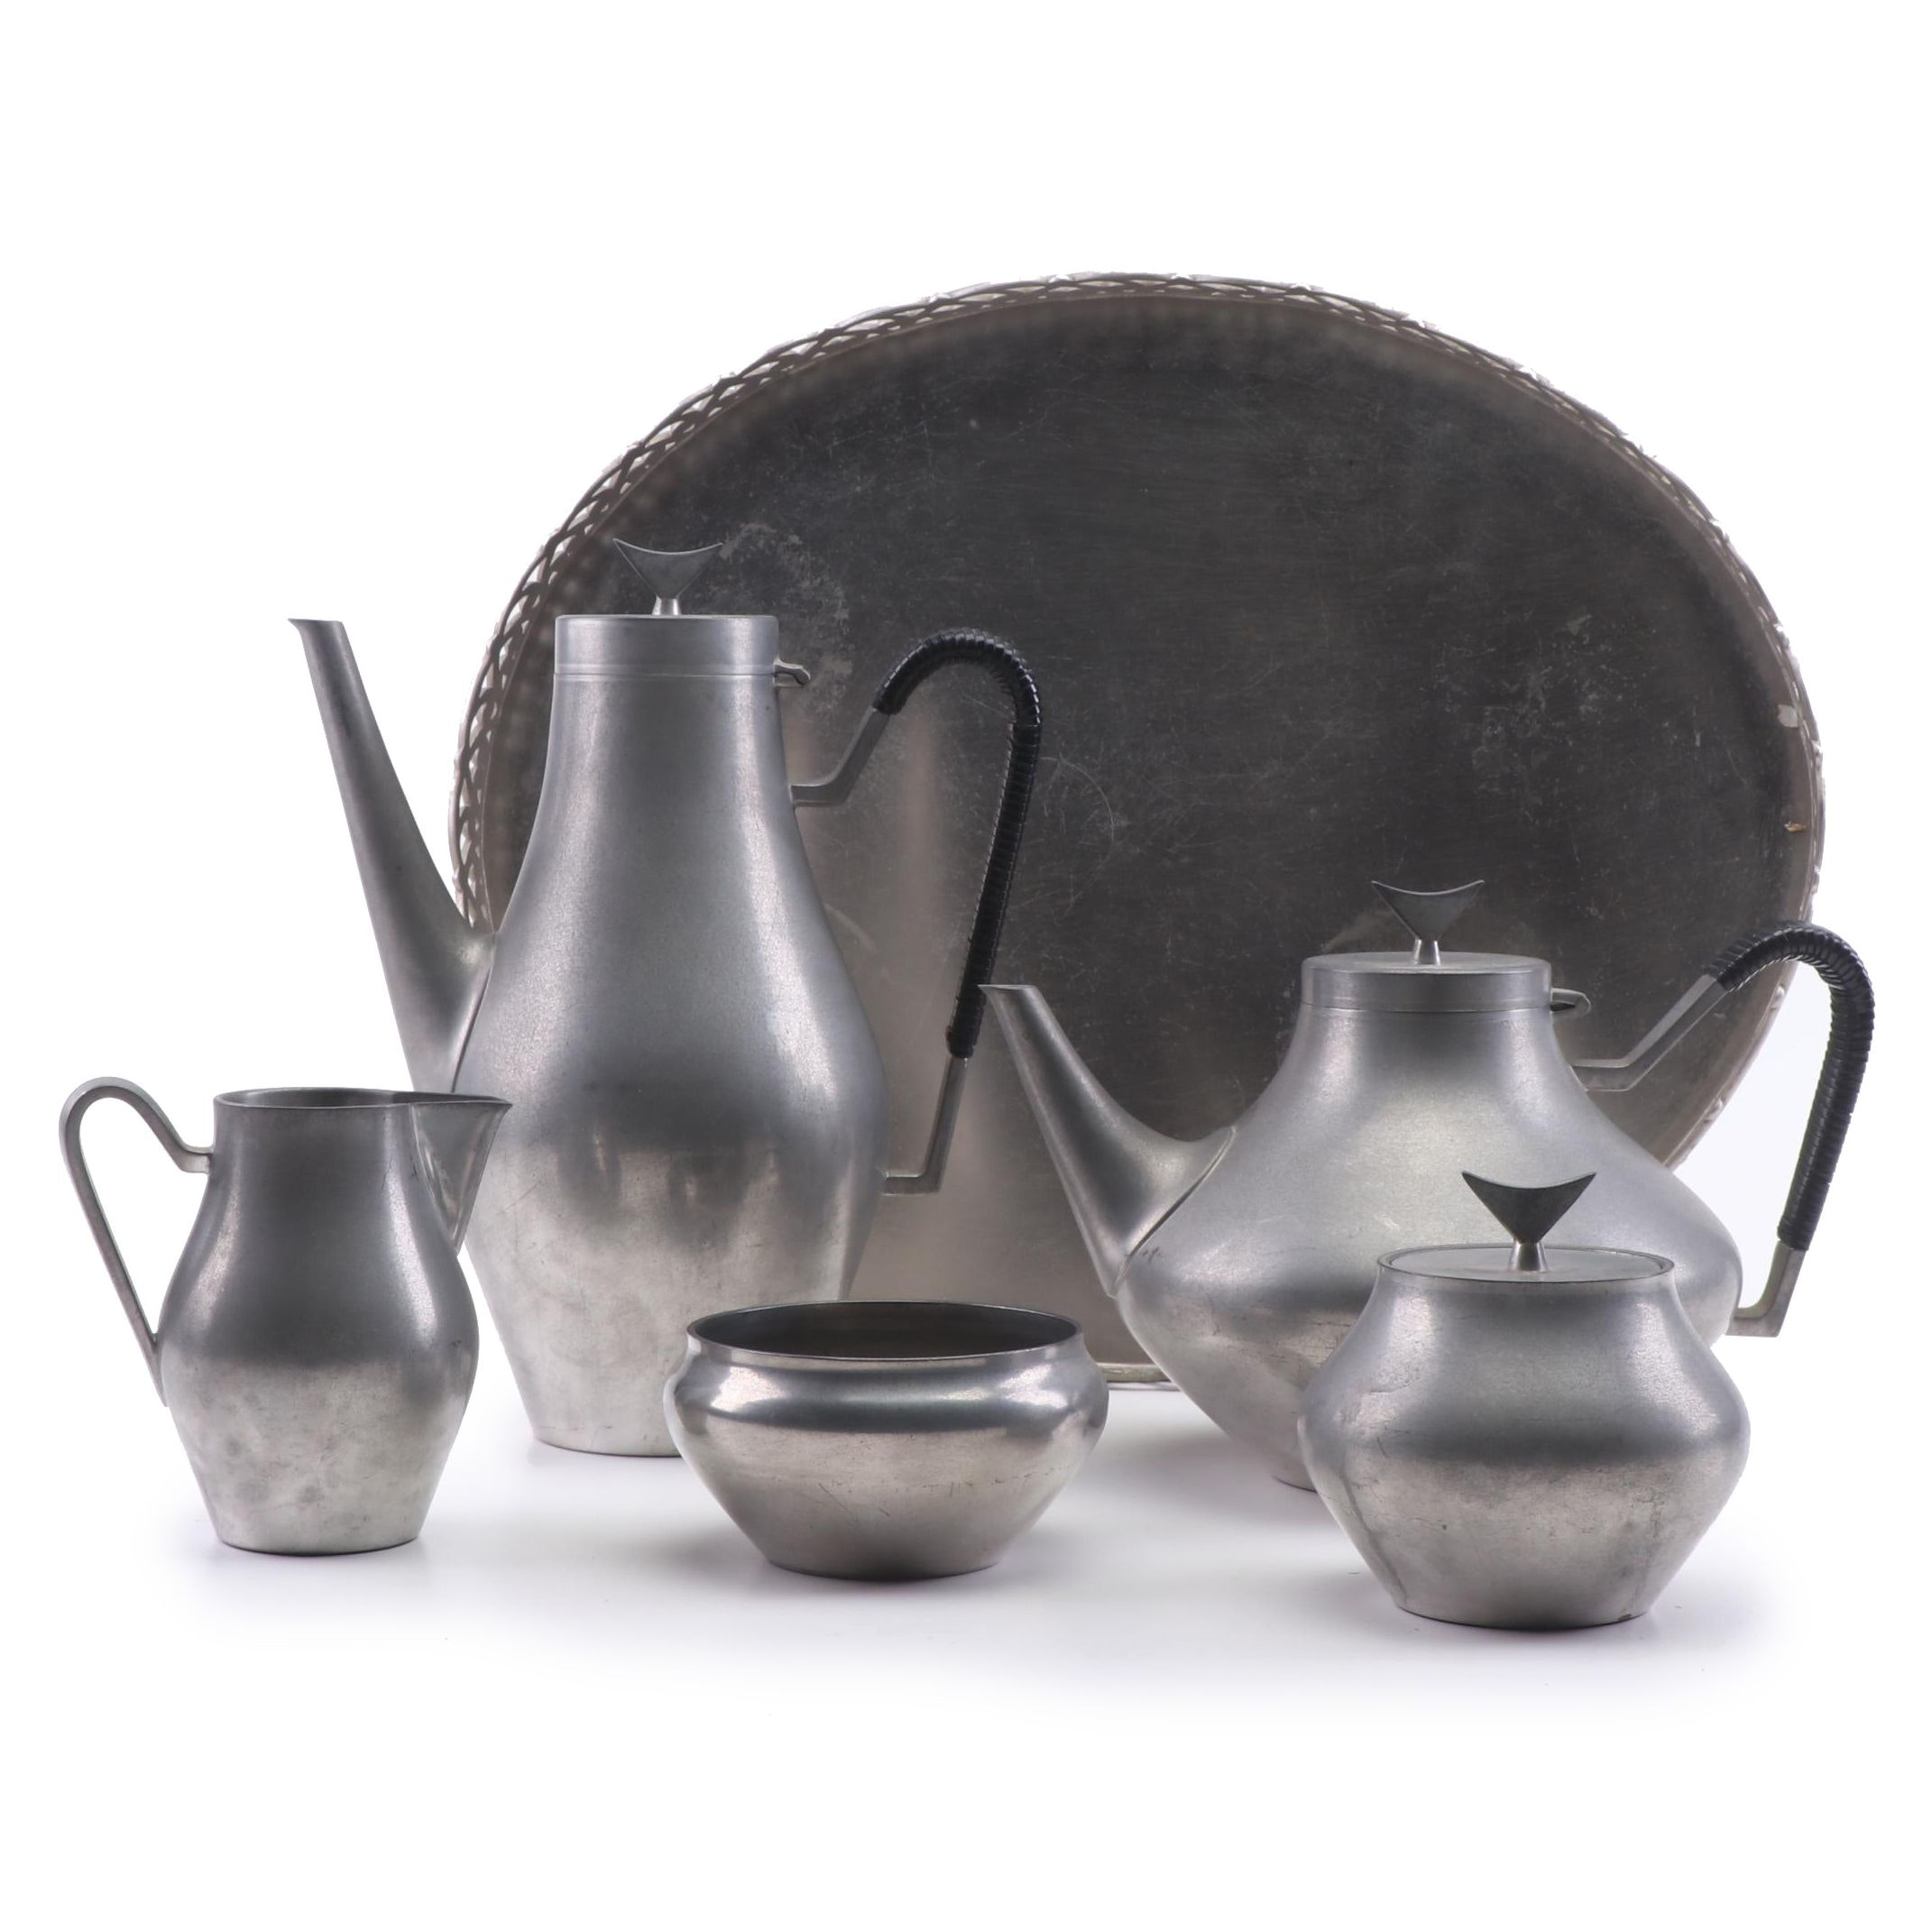 Reed and Barton Pewter Tea and Coffee Set, Mid 20th Century